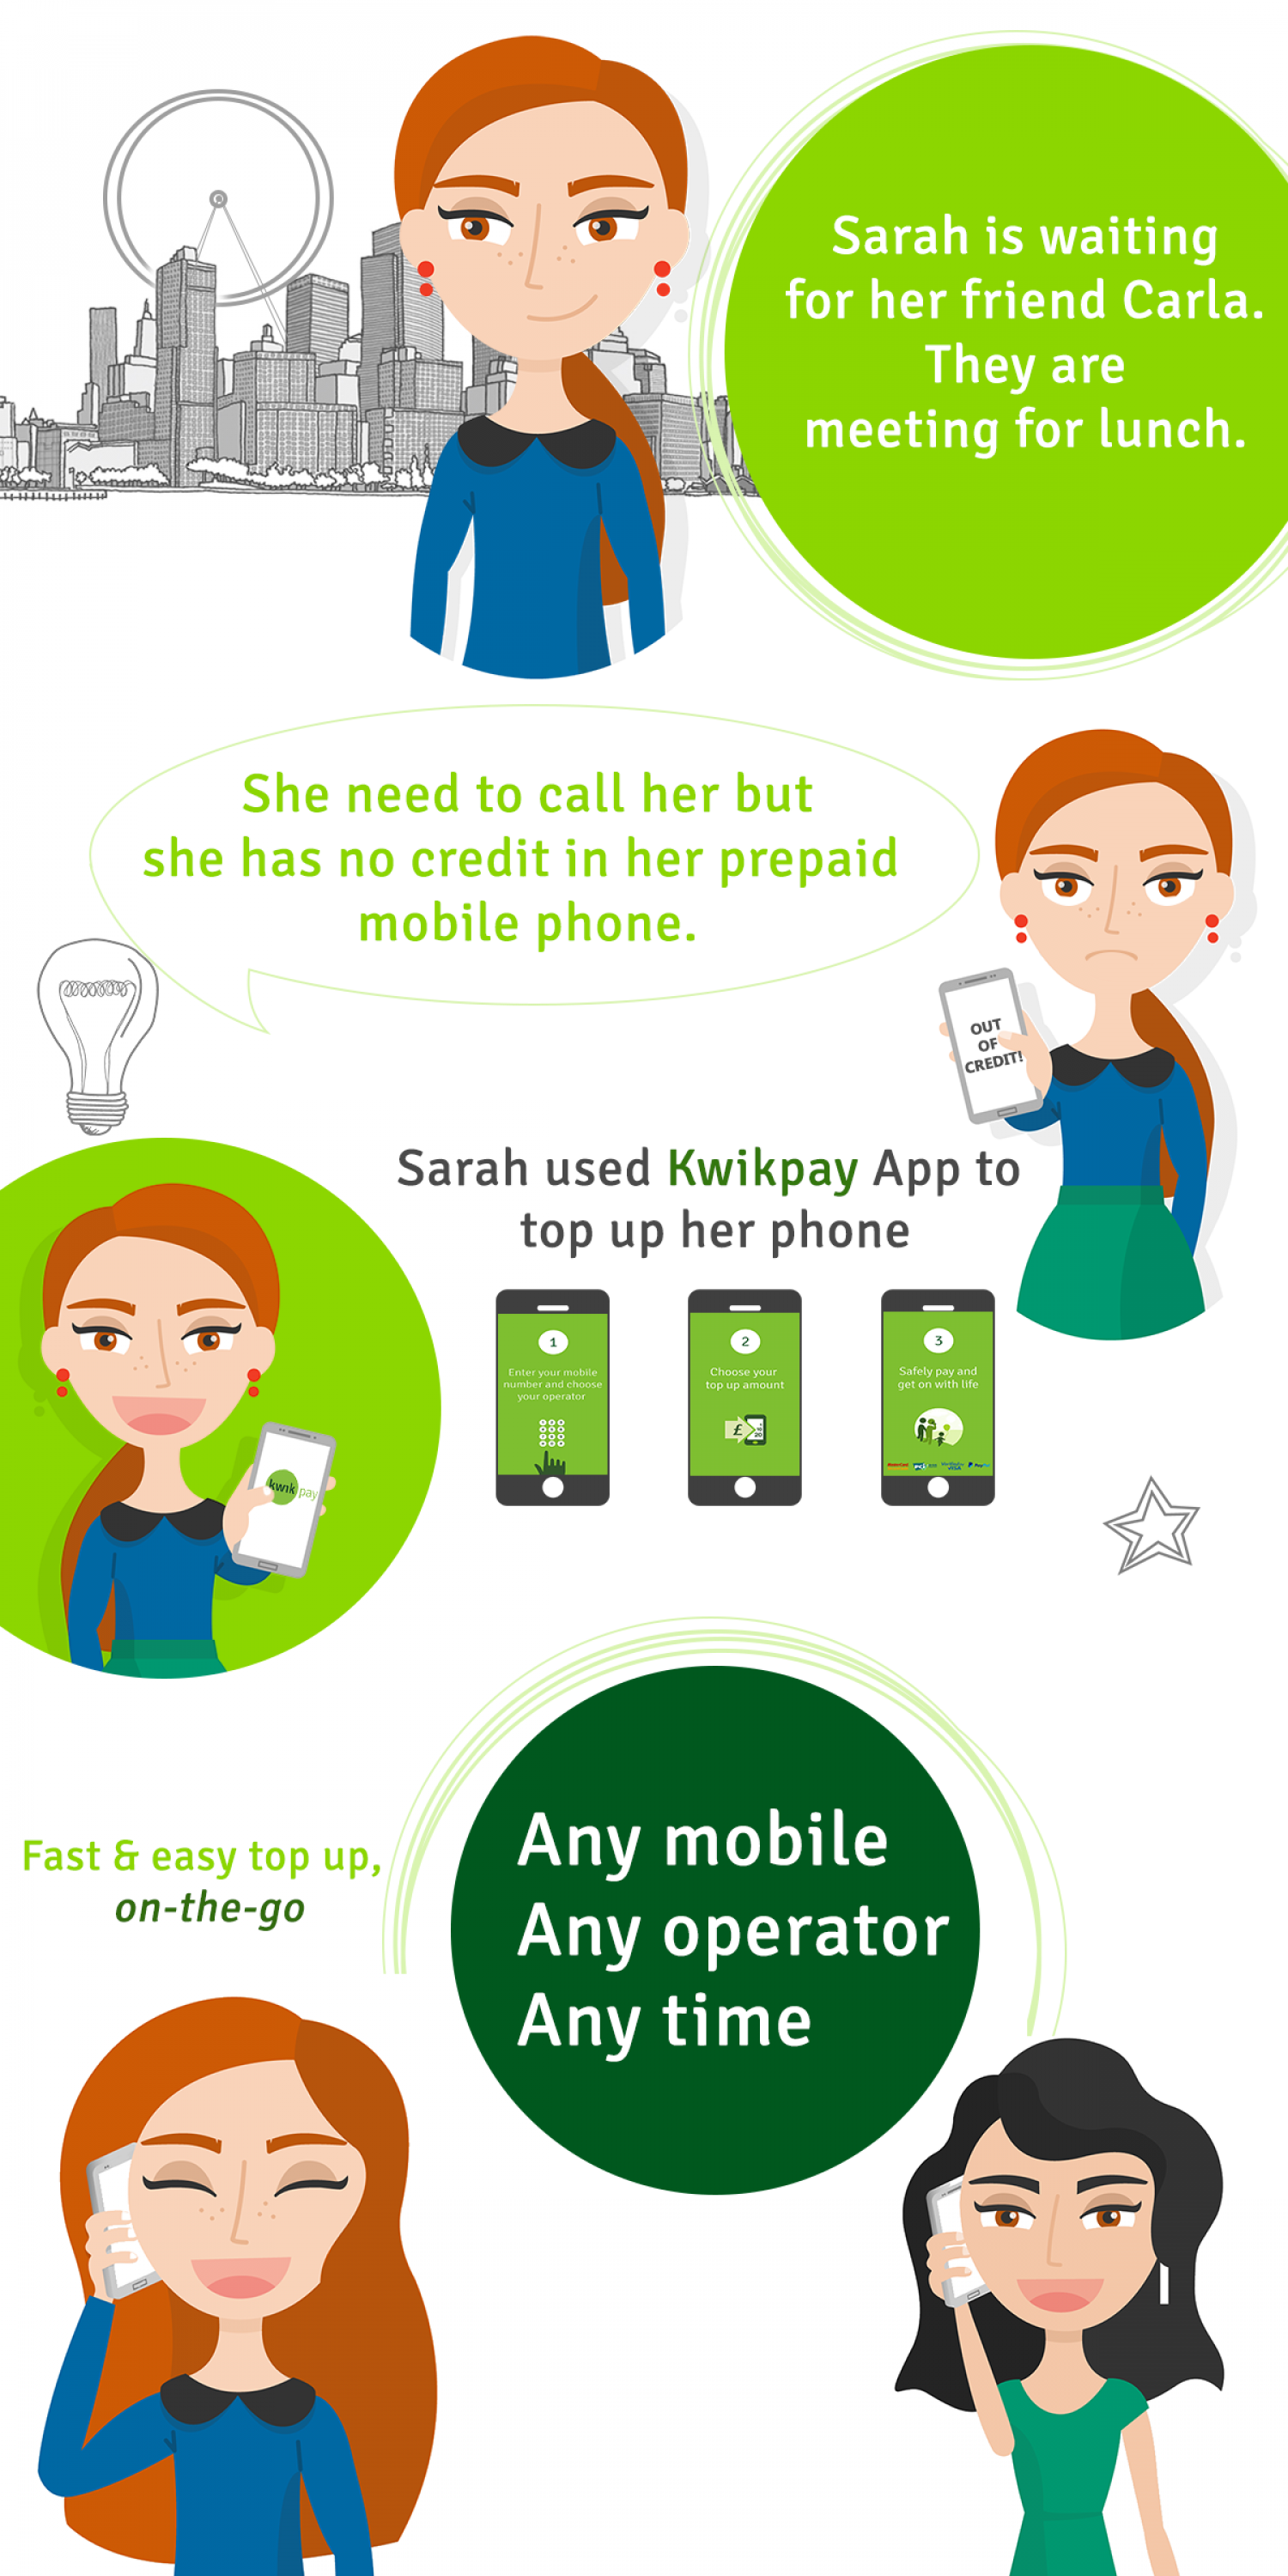 Kwikpay - Fast & easy top up, on-the-go Infographic